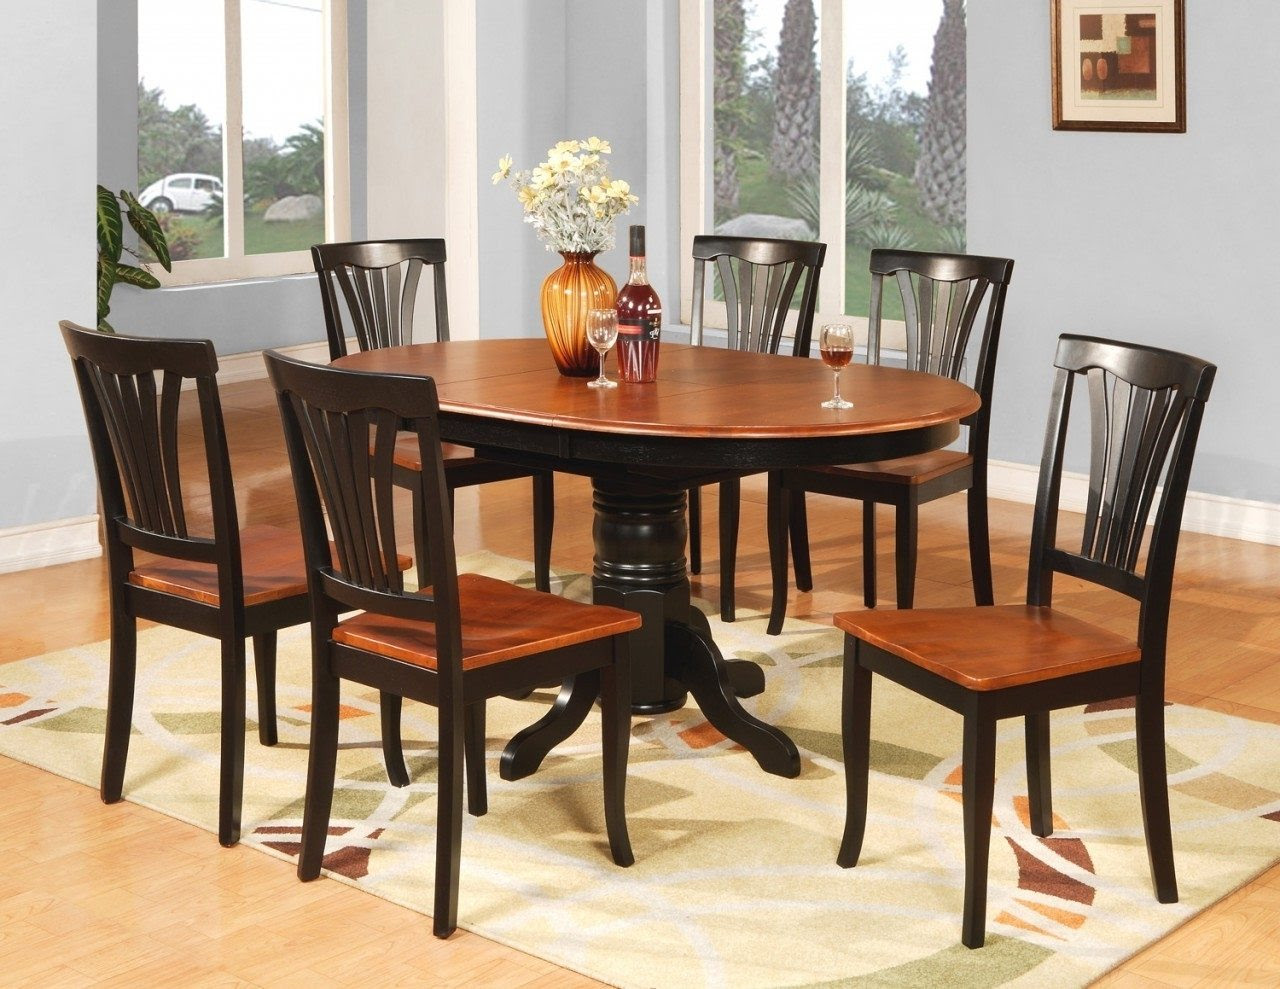 Cheap Dining Room Tables  Chairs – How to Bargain for Cheap Dining Room Sets 27  Cheap Dining